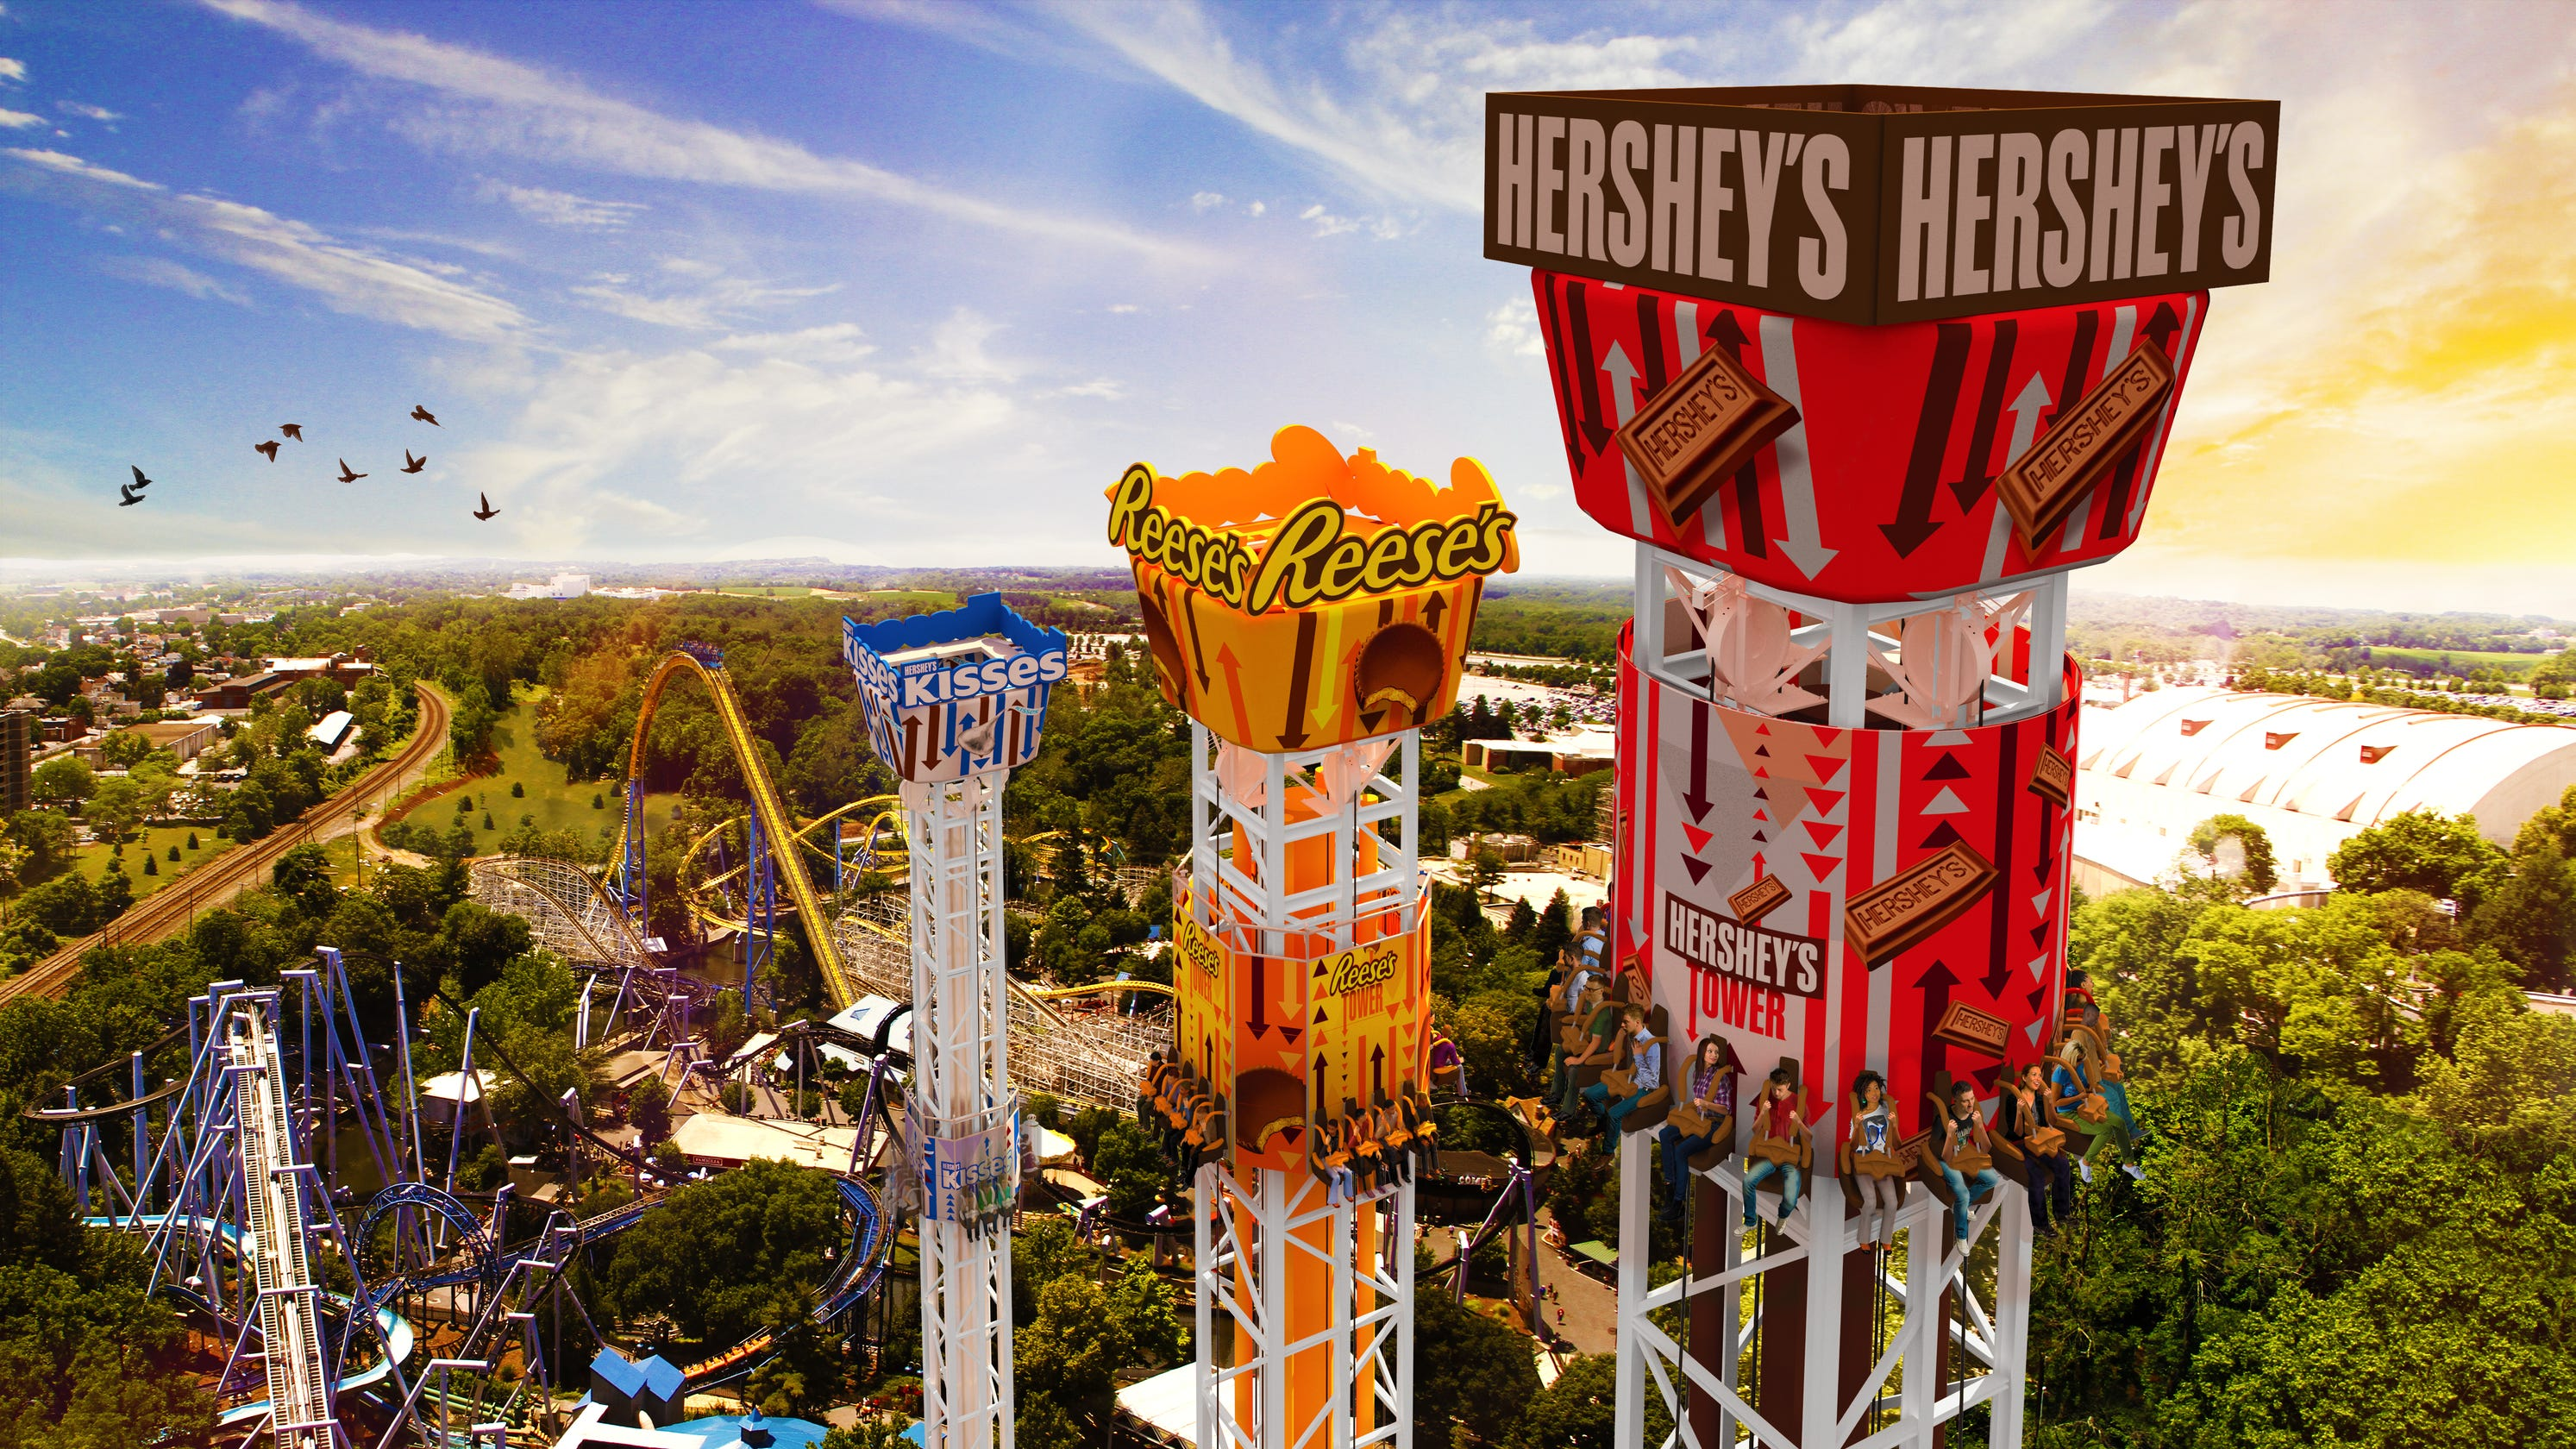 Summer fun: 12 amusement parks for the whole family, in